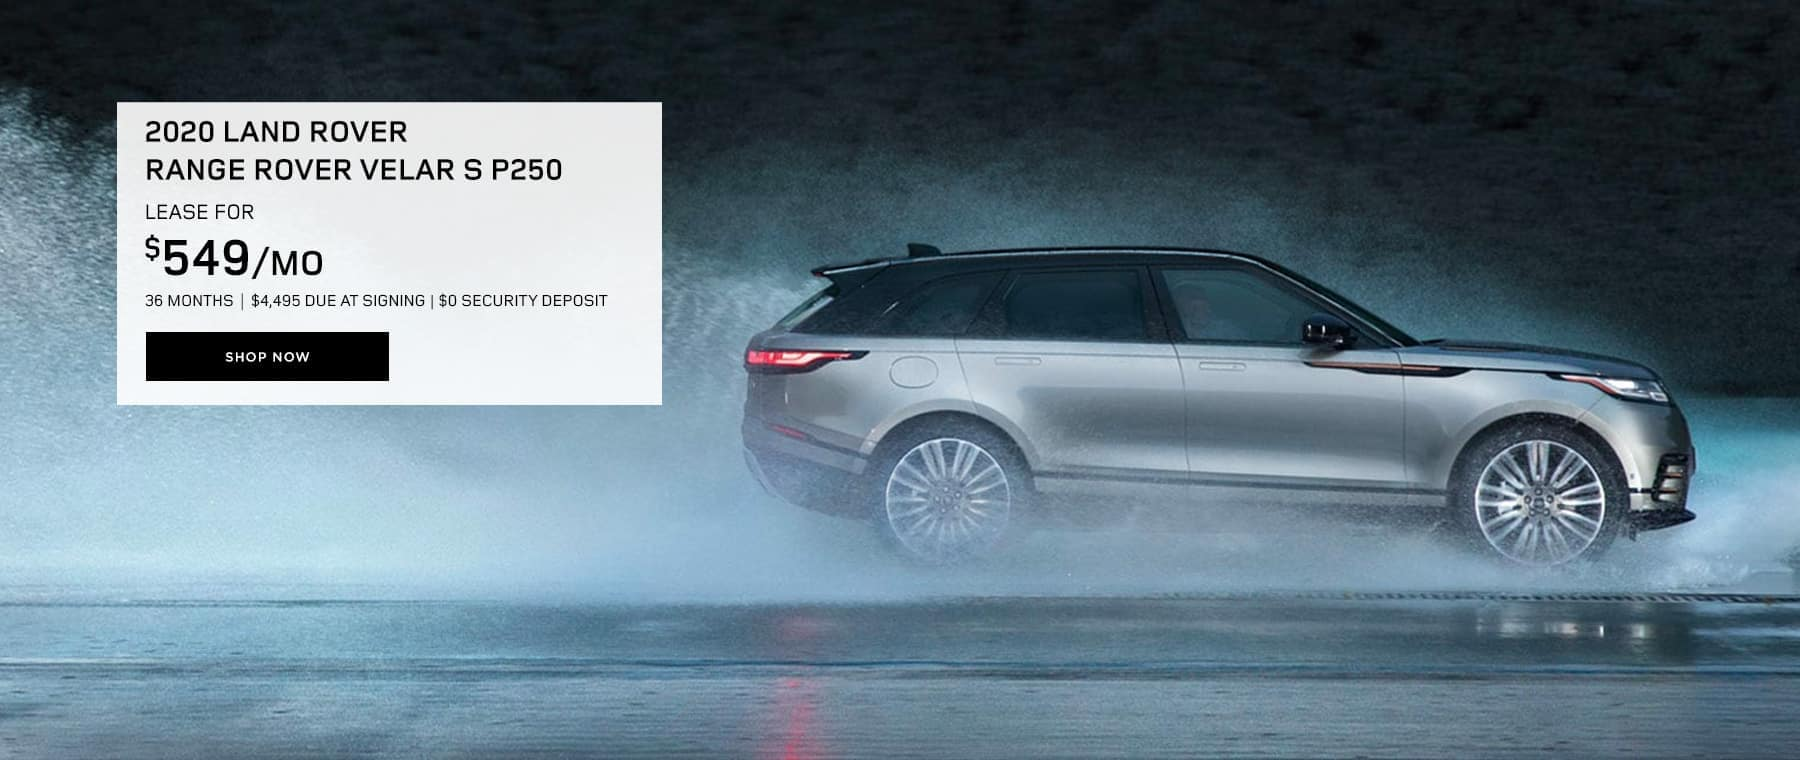 2020 Range Rover Velar Lease Offer Land Rover Hinsdale